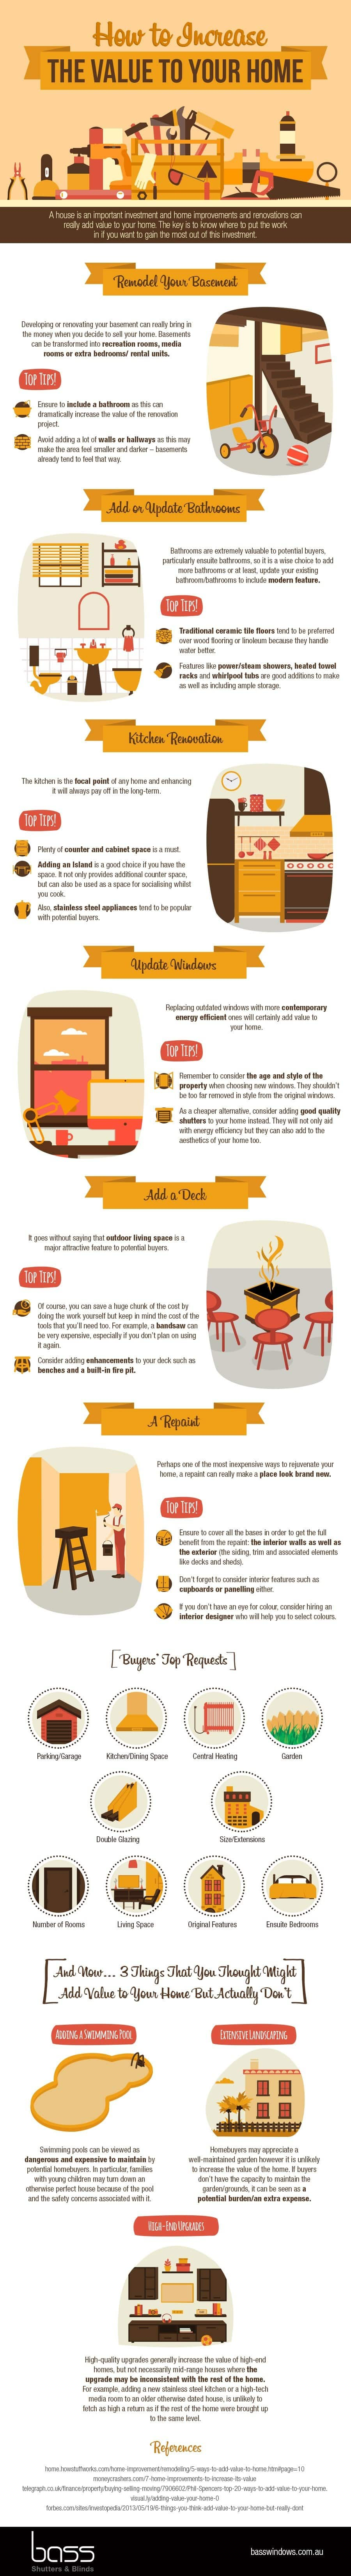 How To Increase Value Of Your Home - Awesome Infographic Home Improvements Latest Posts